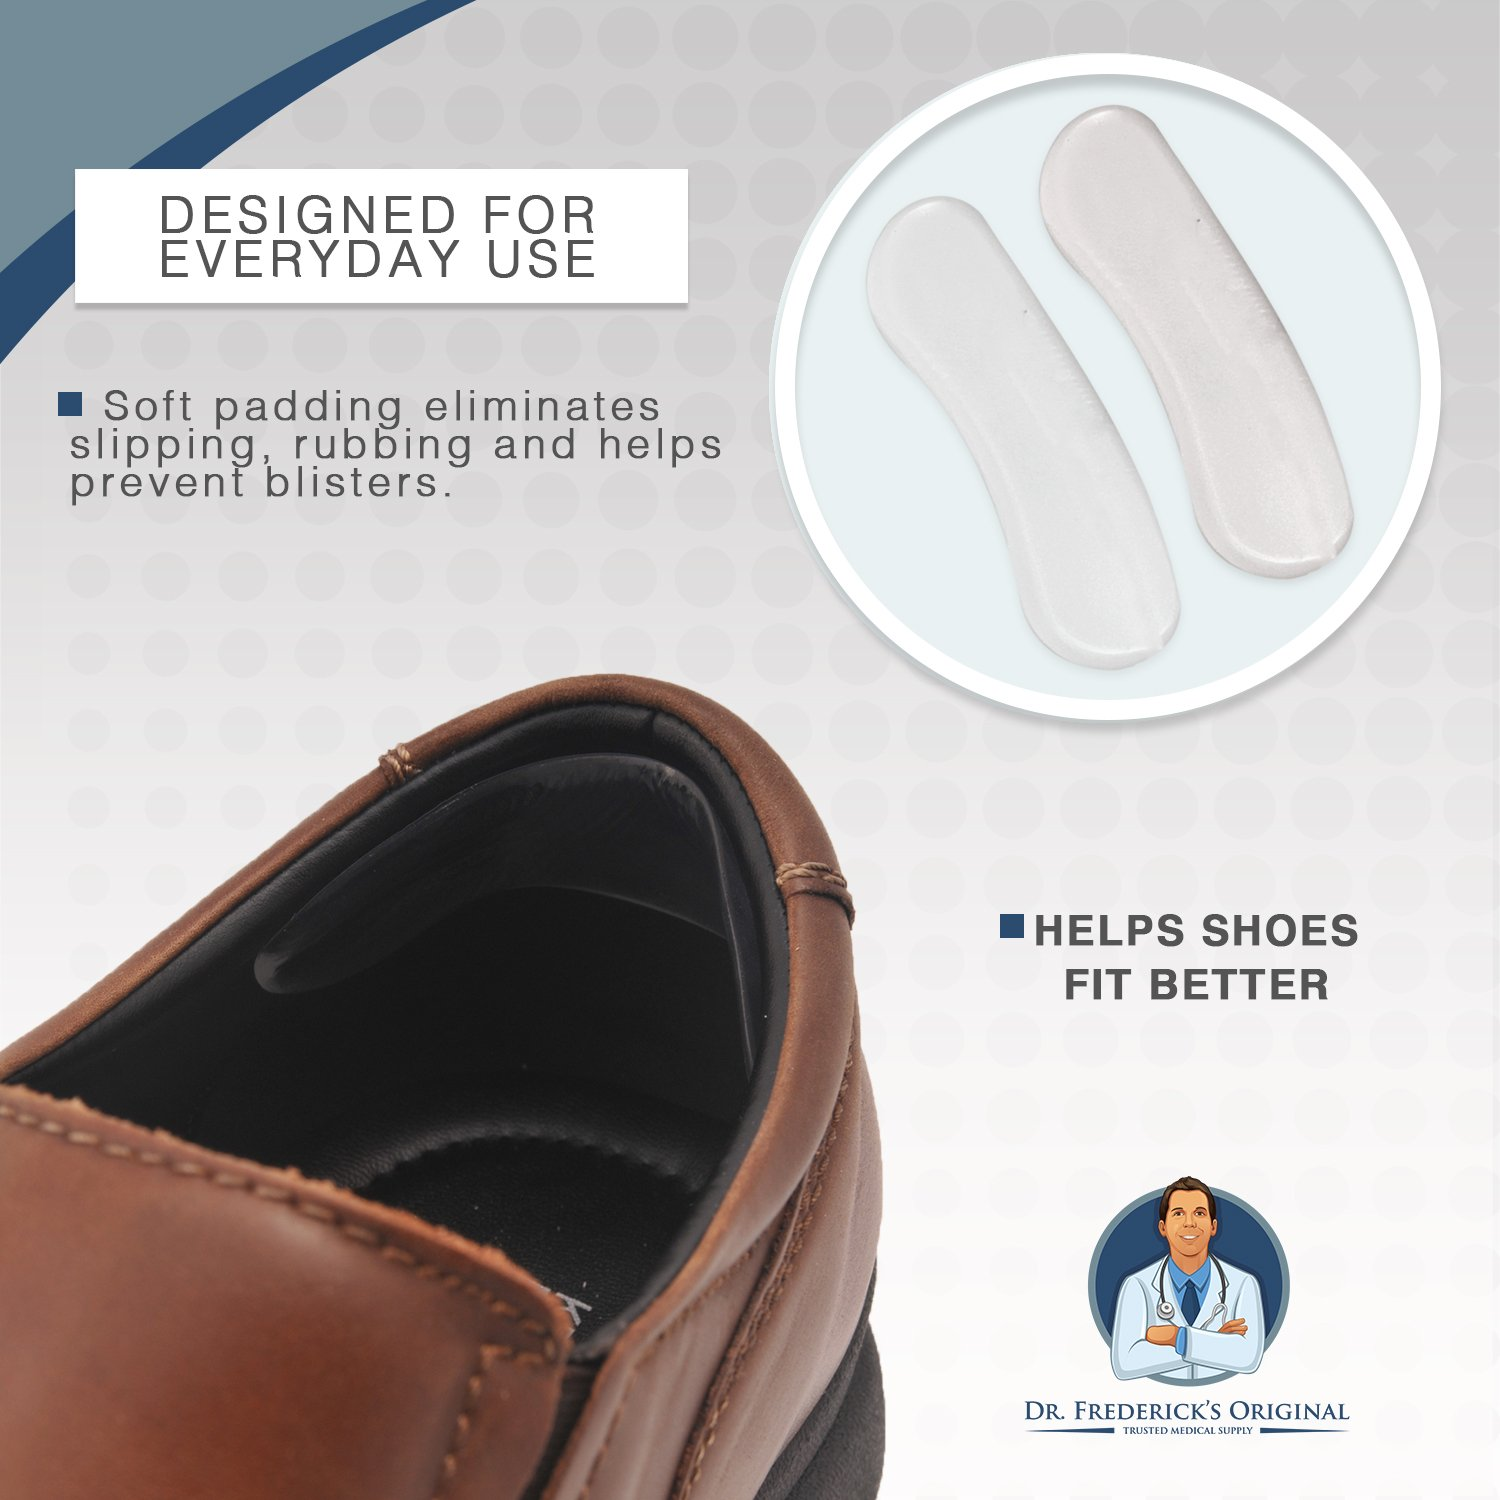 Dr. Frederick's Original Protective & Flexible Heel Grips Set - 10 Pieces - Adhesive Gel Heel Protectors to Prevent Blisters & Cuts - Heel Cushion Set for High Heels, Dress Shoes, Slip-Ons, and More by Dr. Frederick's Original (Image #6)